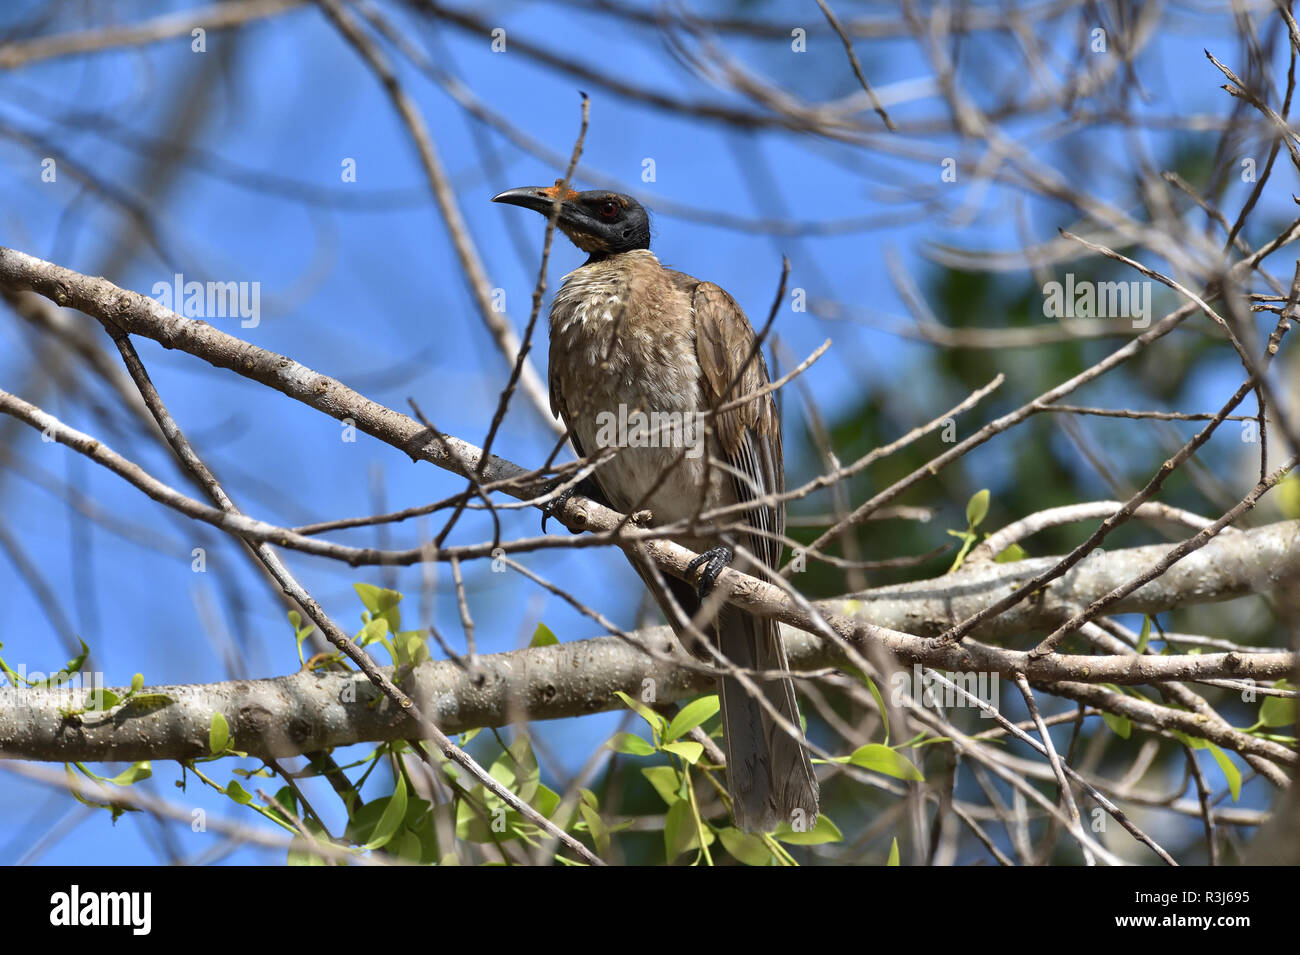 An Australian, Queensland Noisy Friarbird ( Philemon corniculatus ) resting perched on a tree branch Stock Photo